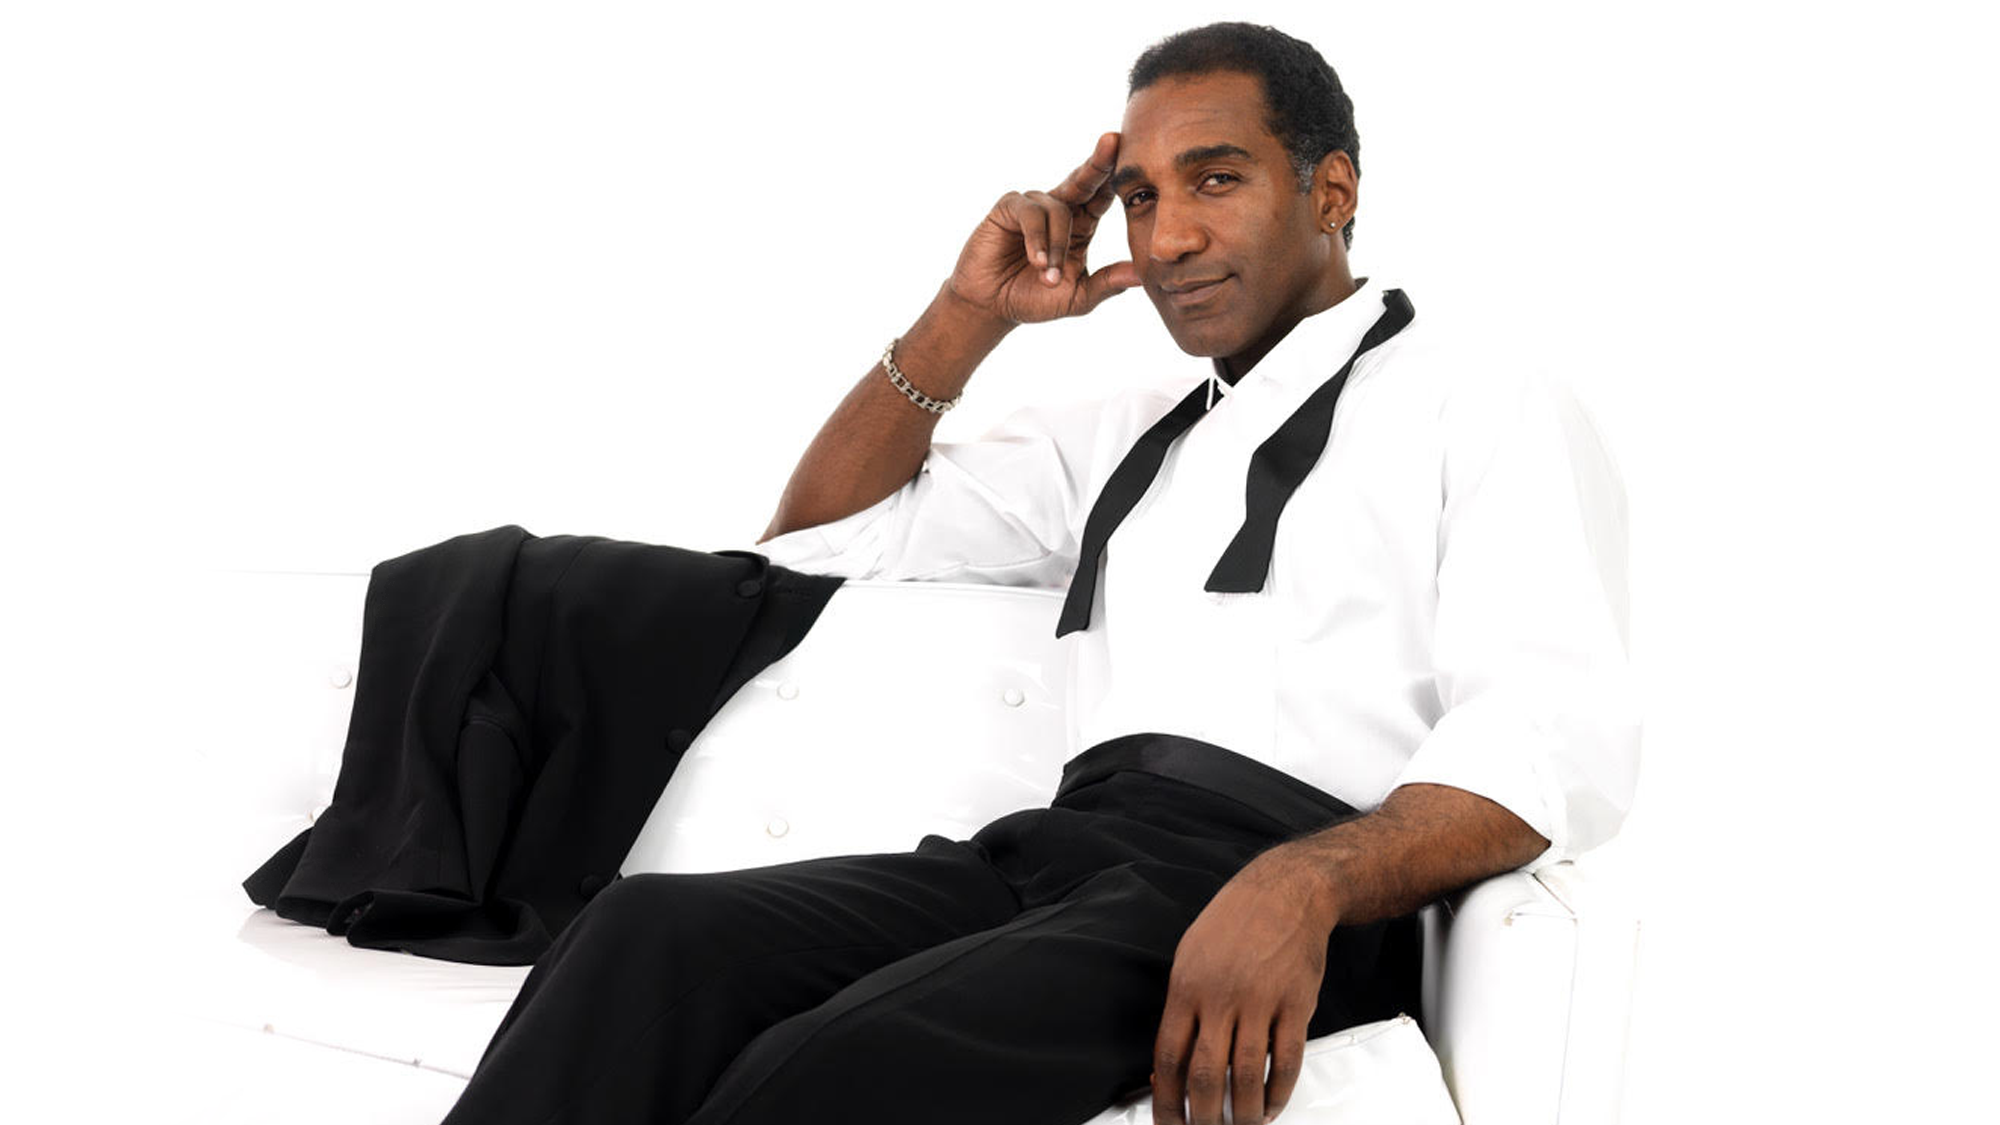 Who Is Bobby Lewis On Norm Lewis' Christmas Album 2021